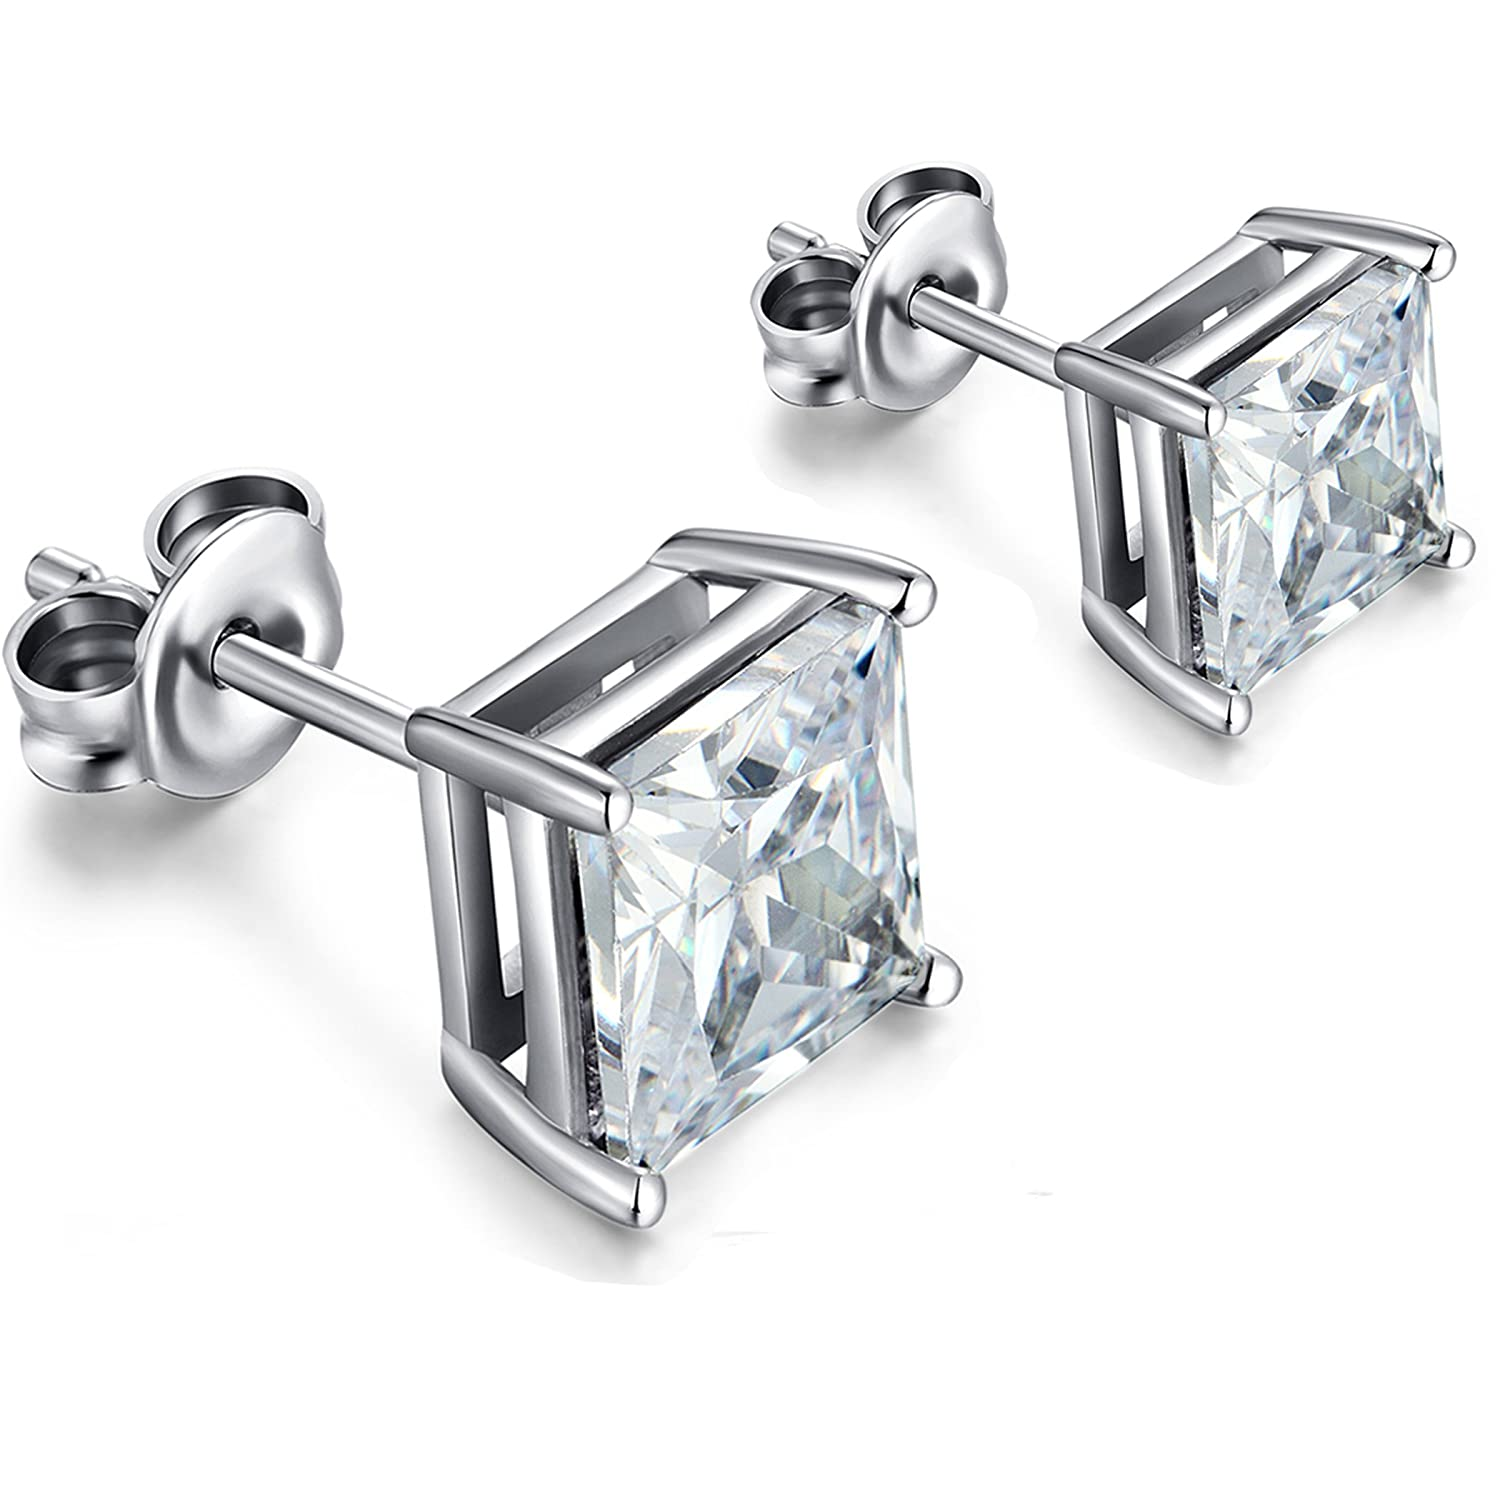 1782bde30 ❤High Quality Material - 18K White Gold Plated 925 Sterling Silver Princess  Cut Stud Earrings Nickel Free,Hypoallergenic Earrings.